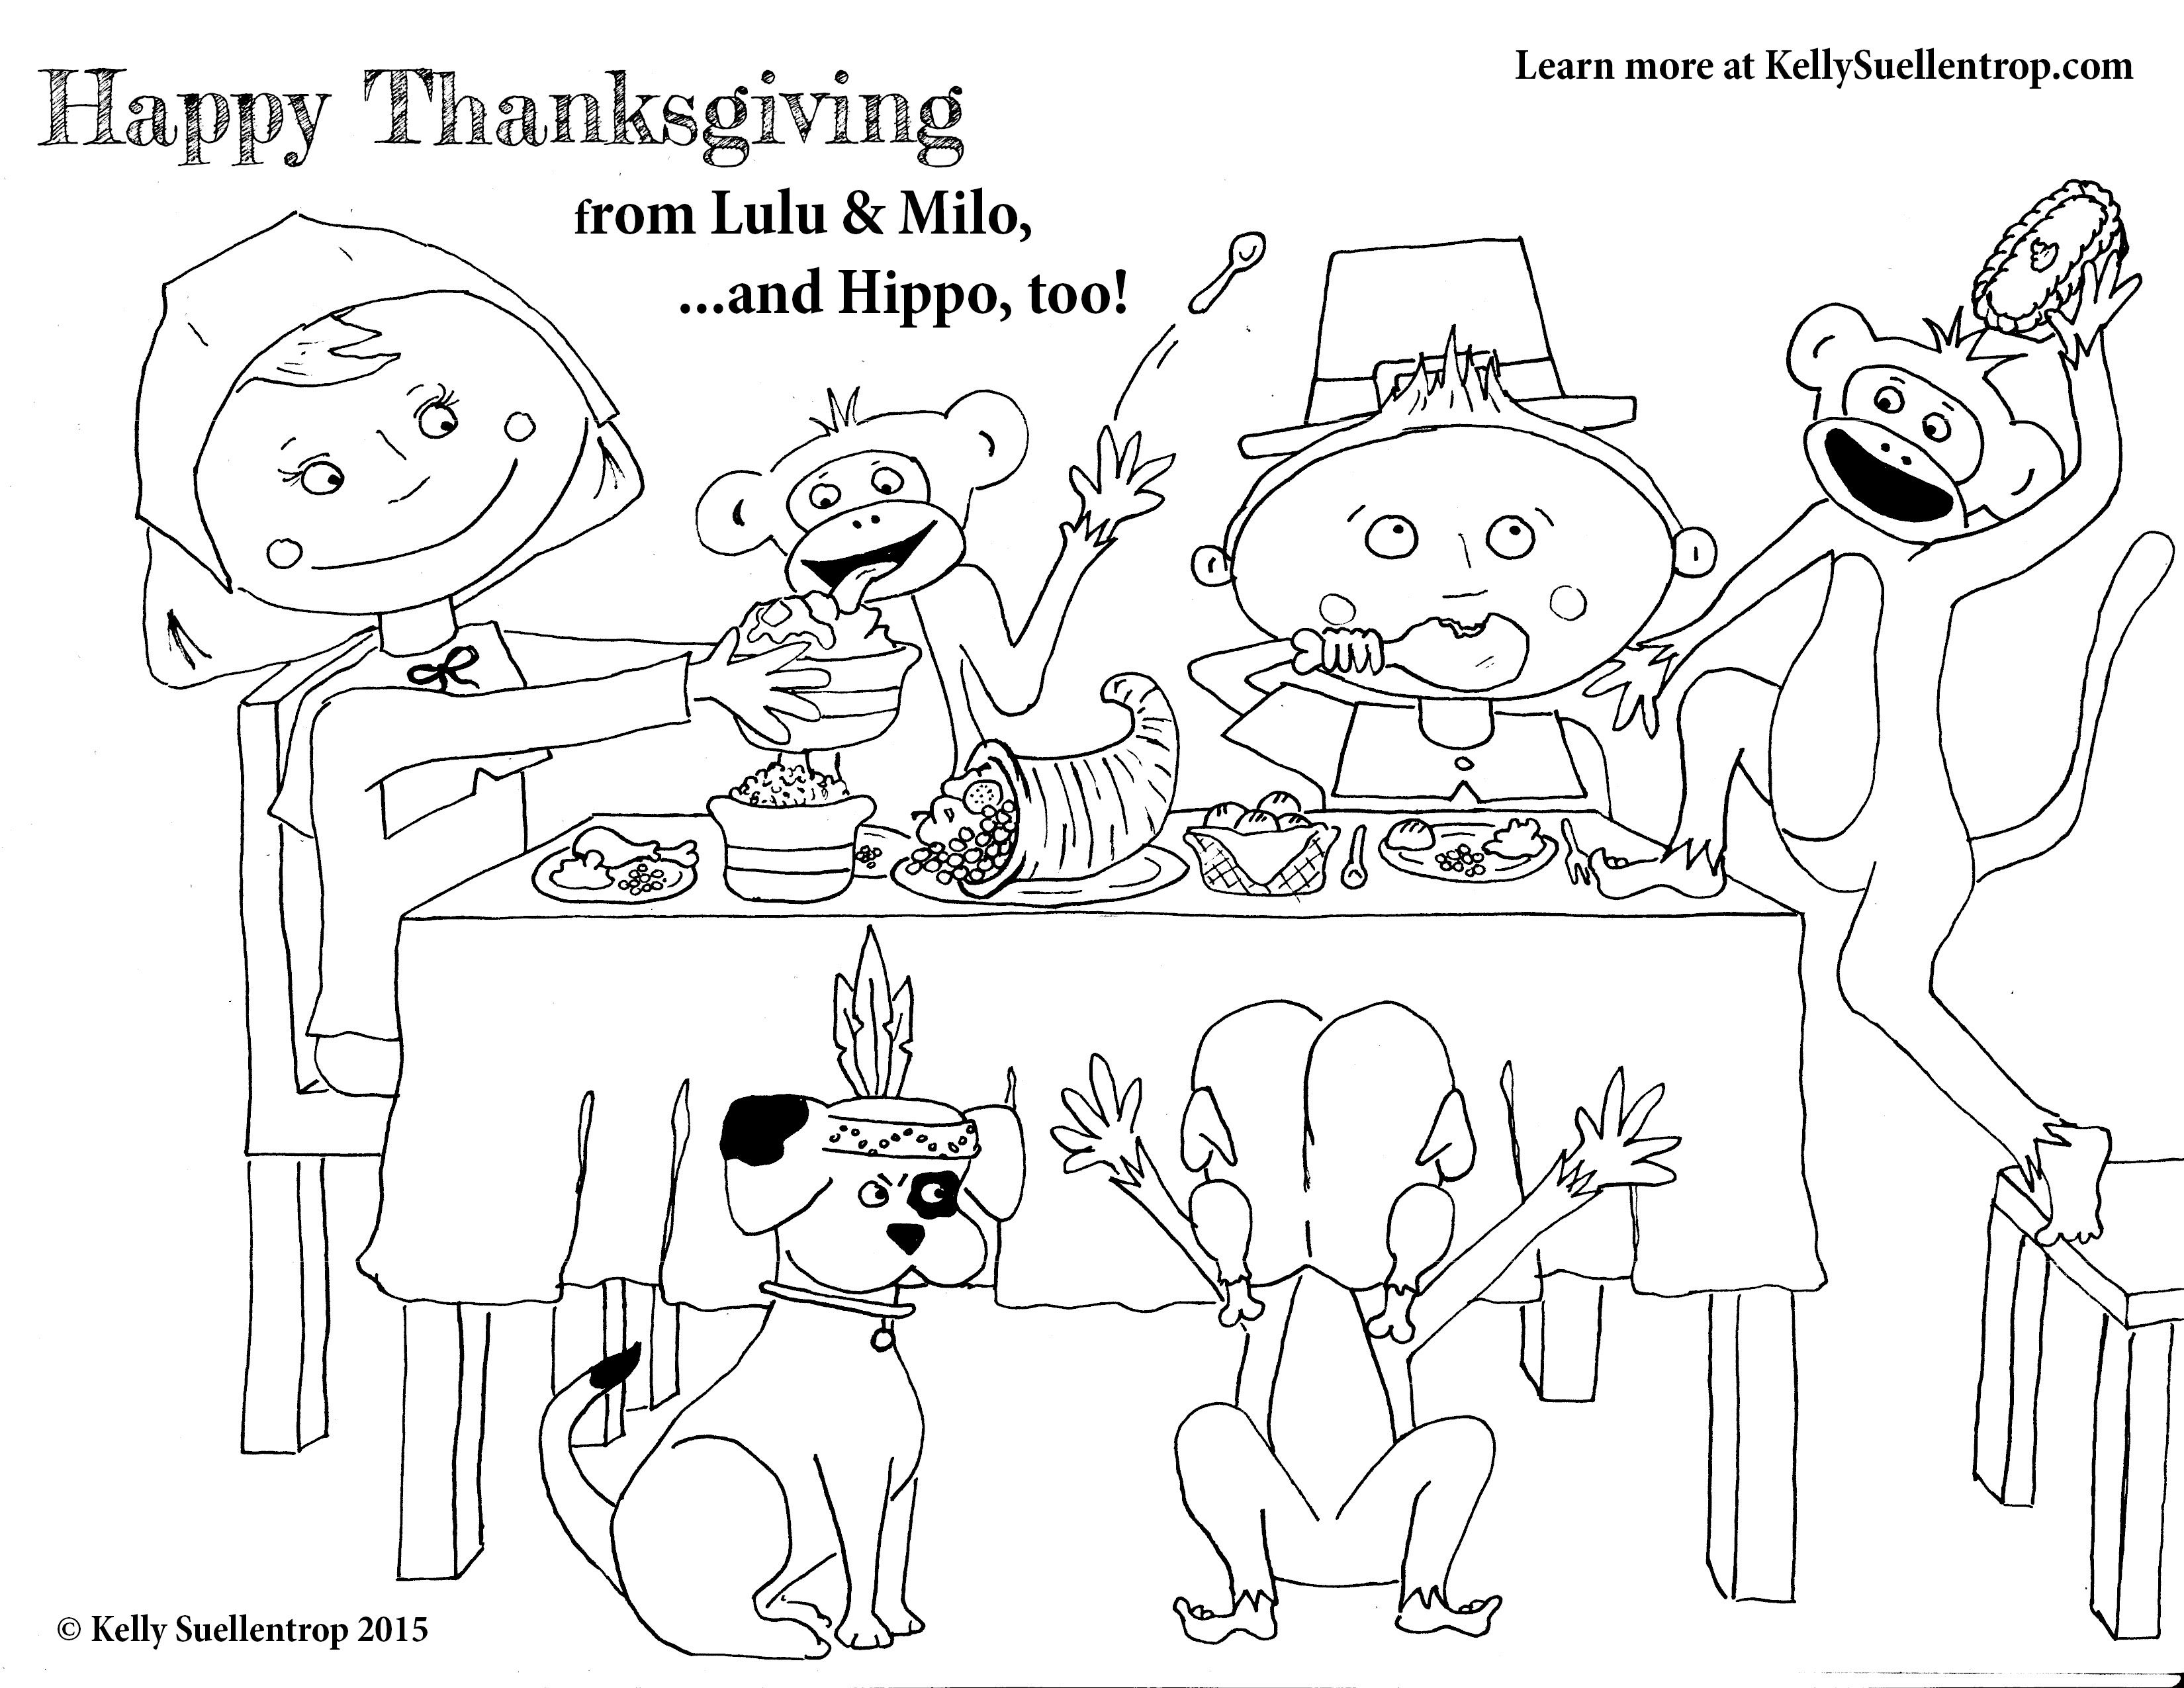 Free Printable Thanksgiving Coloring Sheet - Happy Thanksgiving from ...